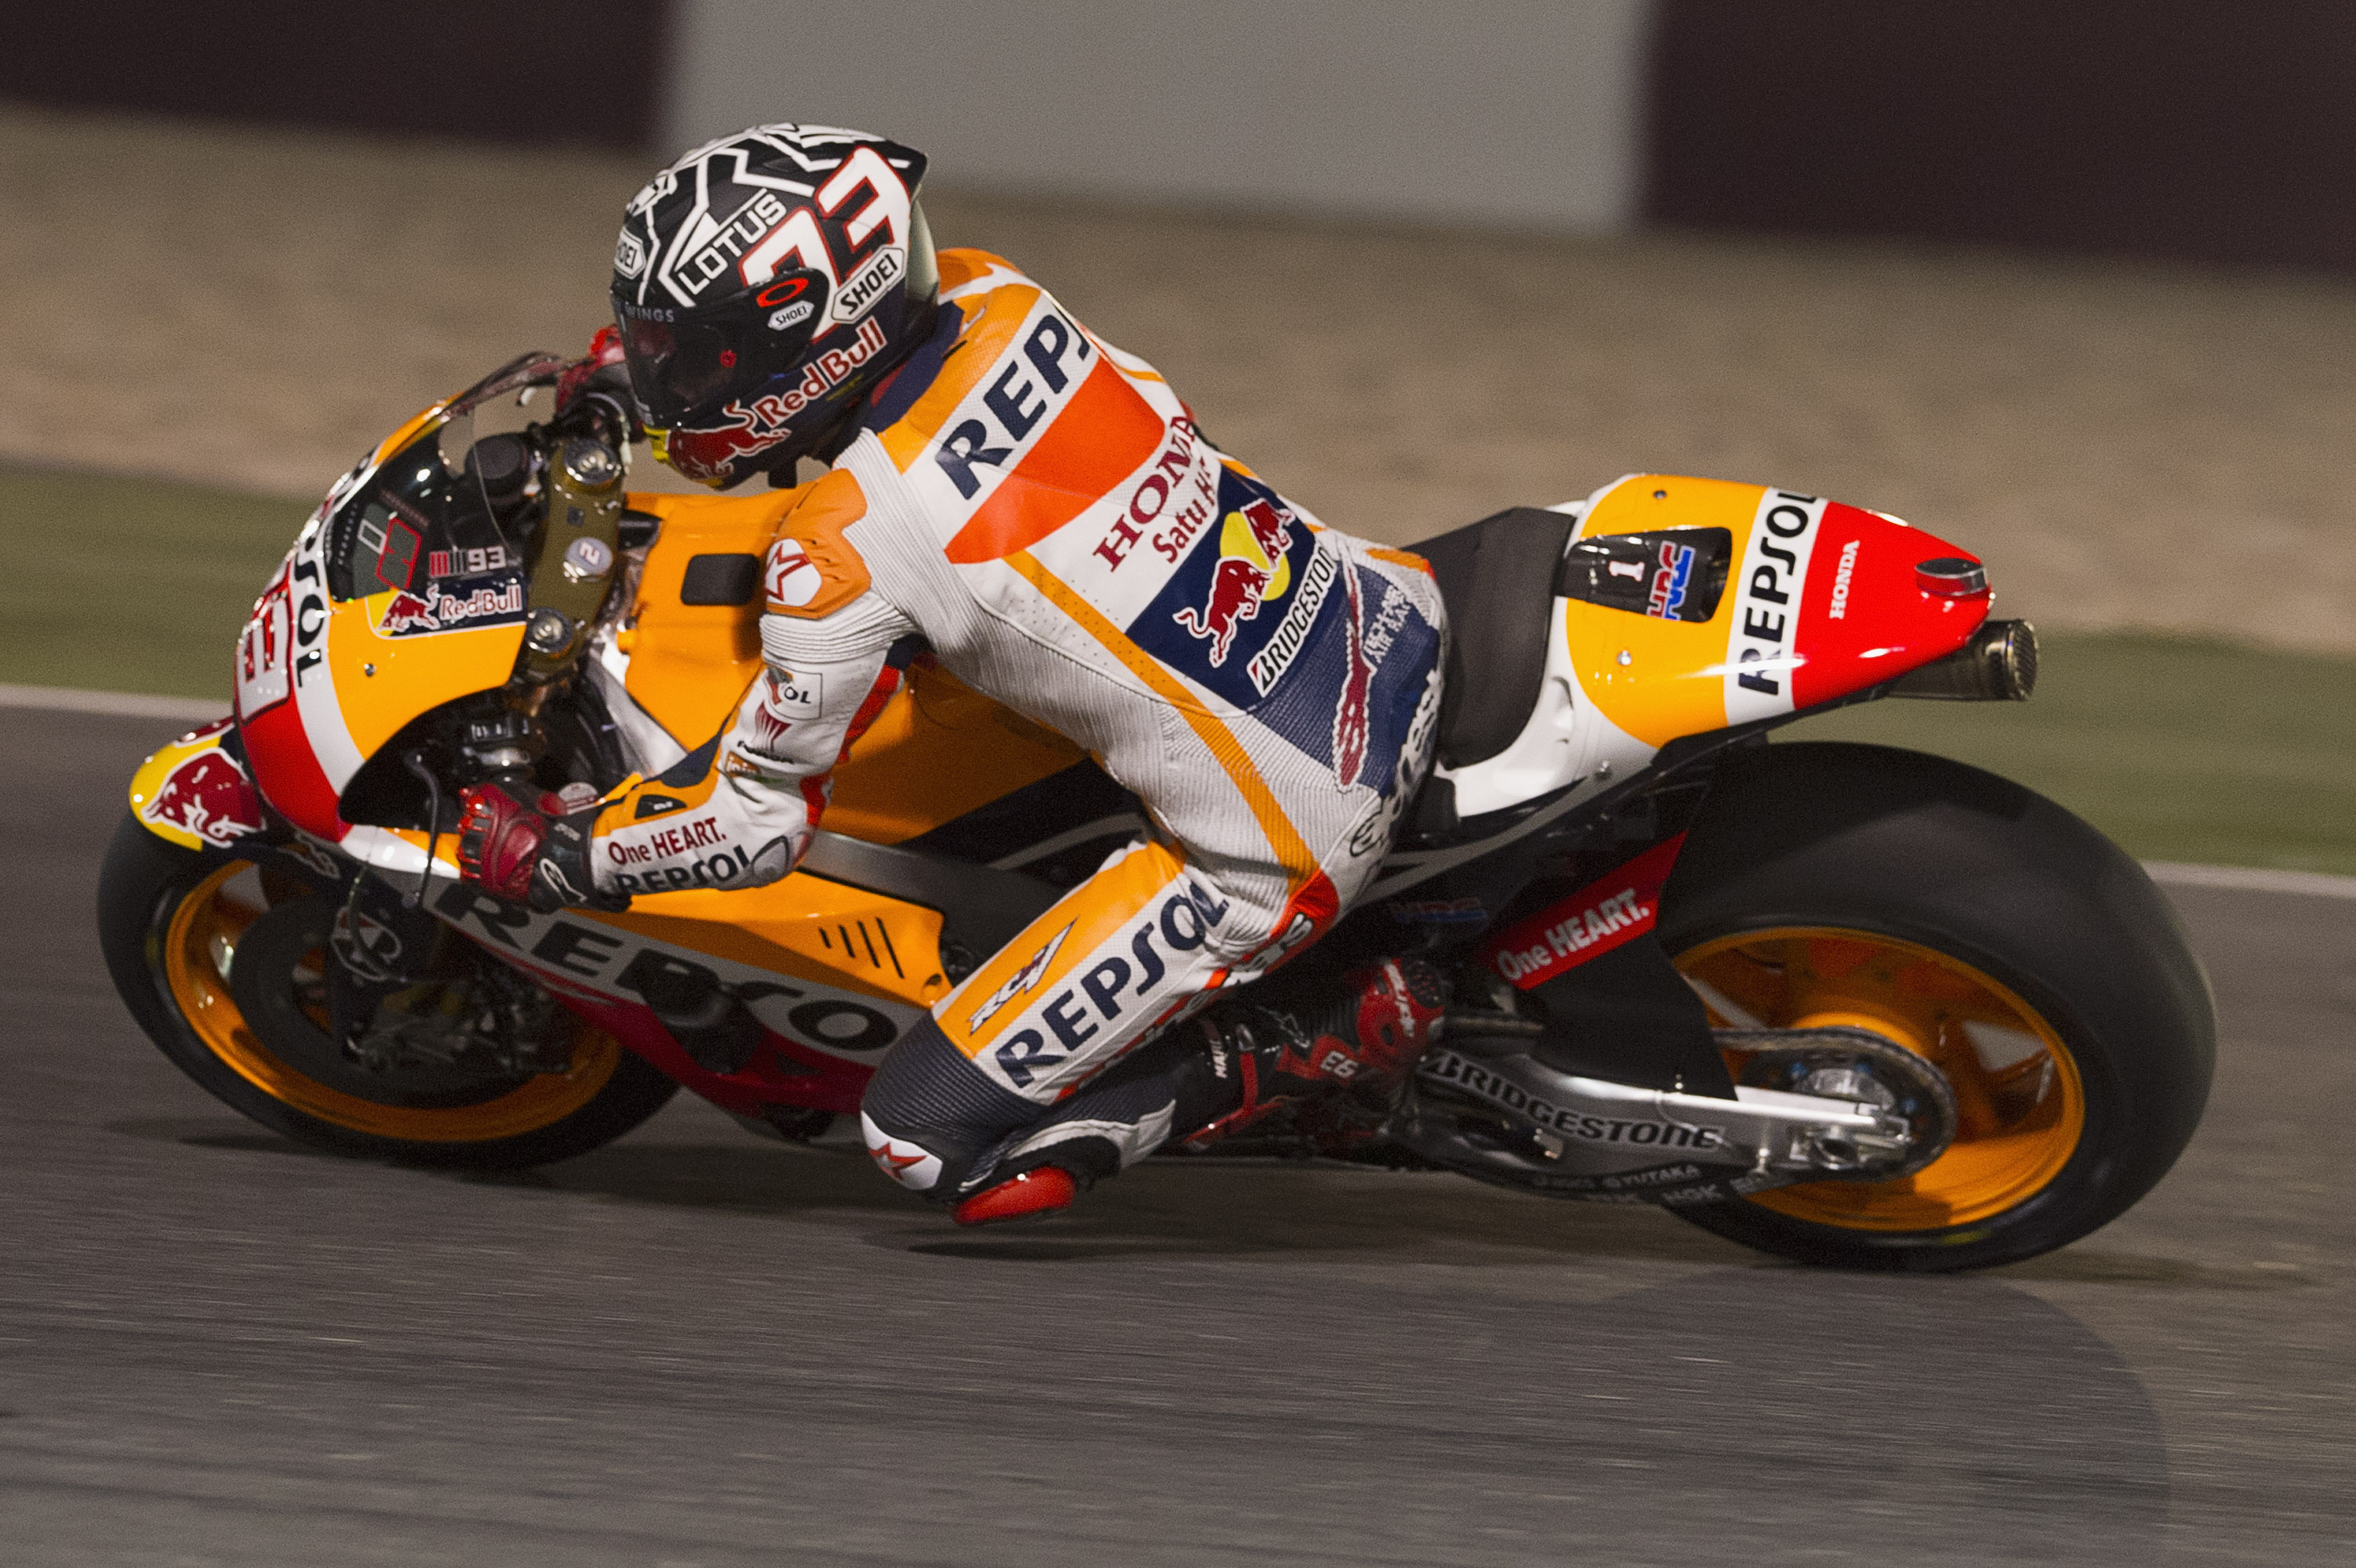 Marc Marquez sees Yamaha, not Ducati, as main rivals